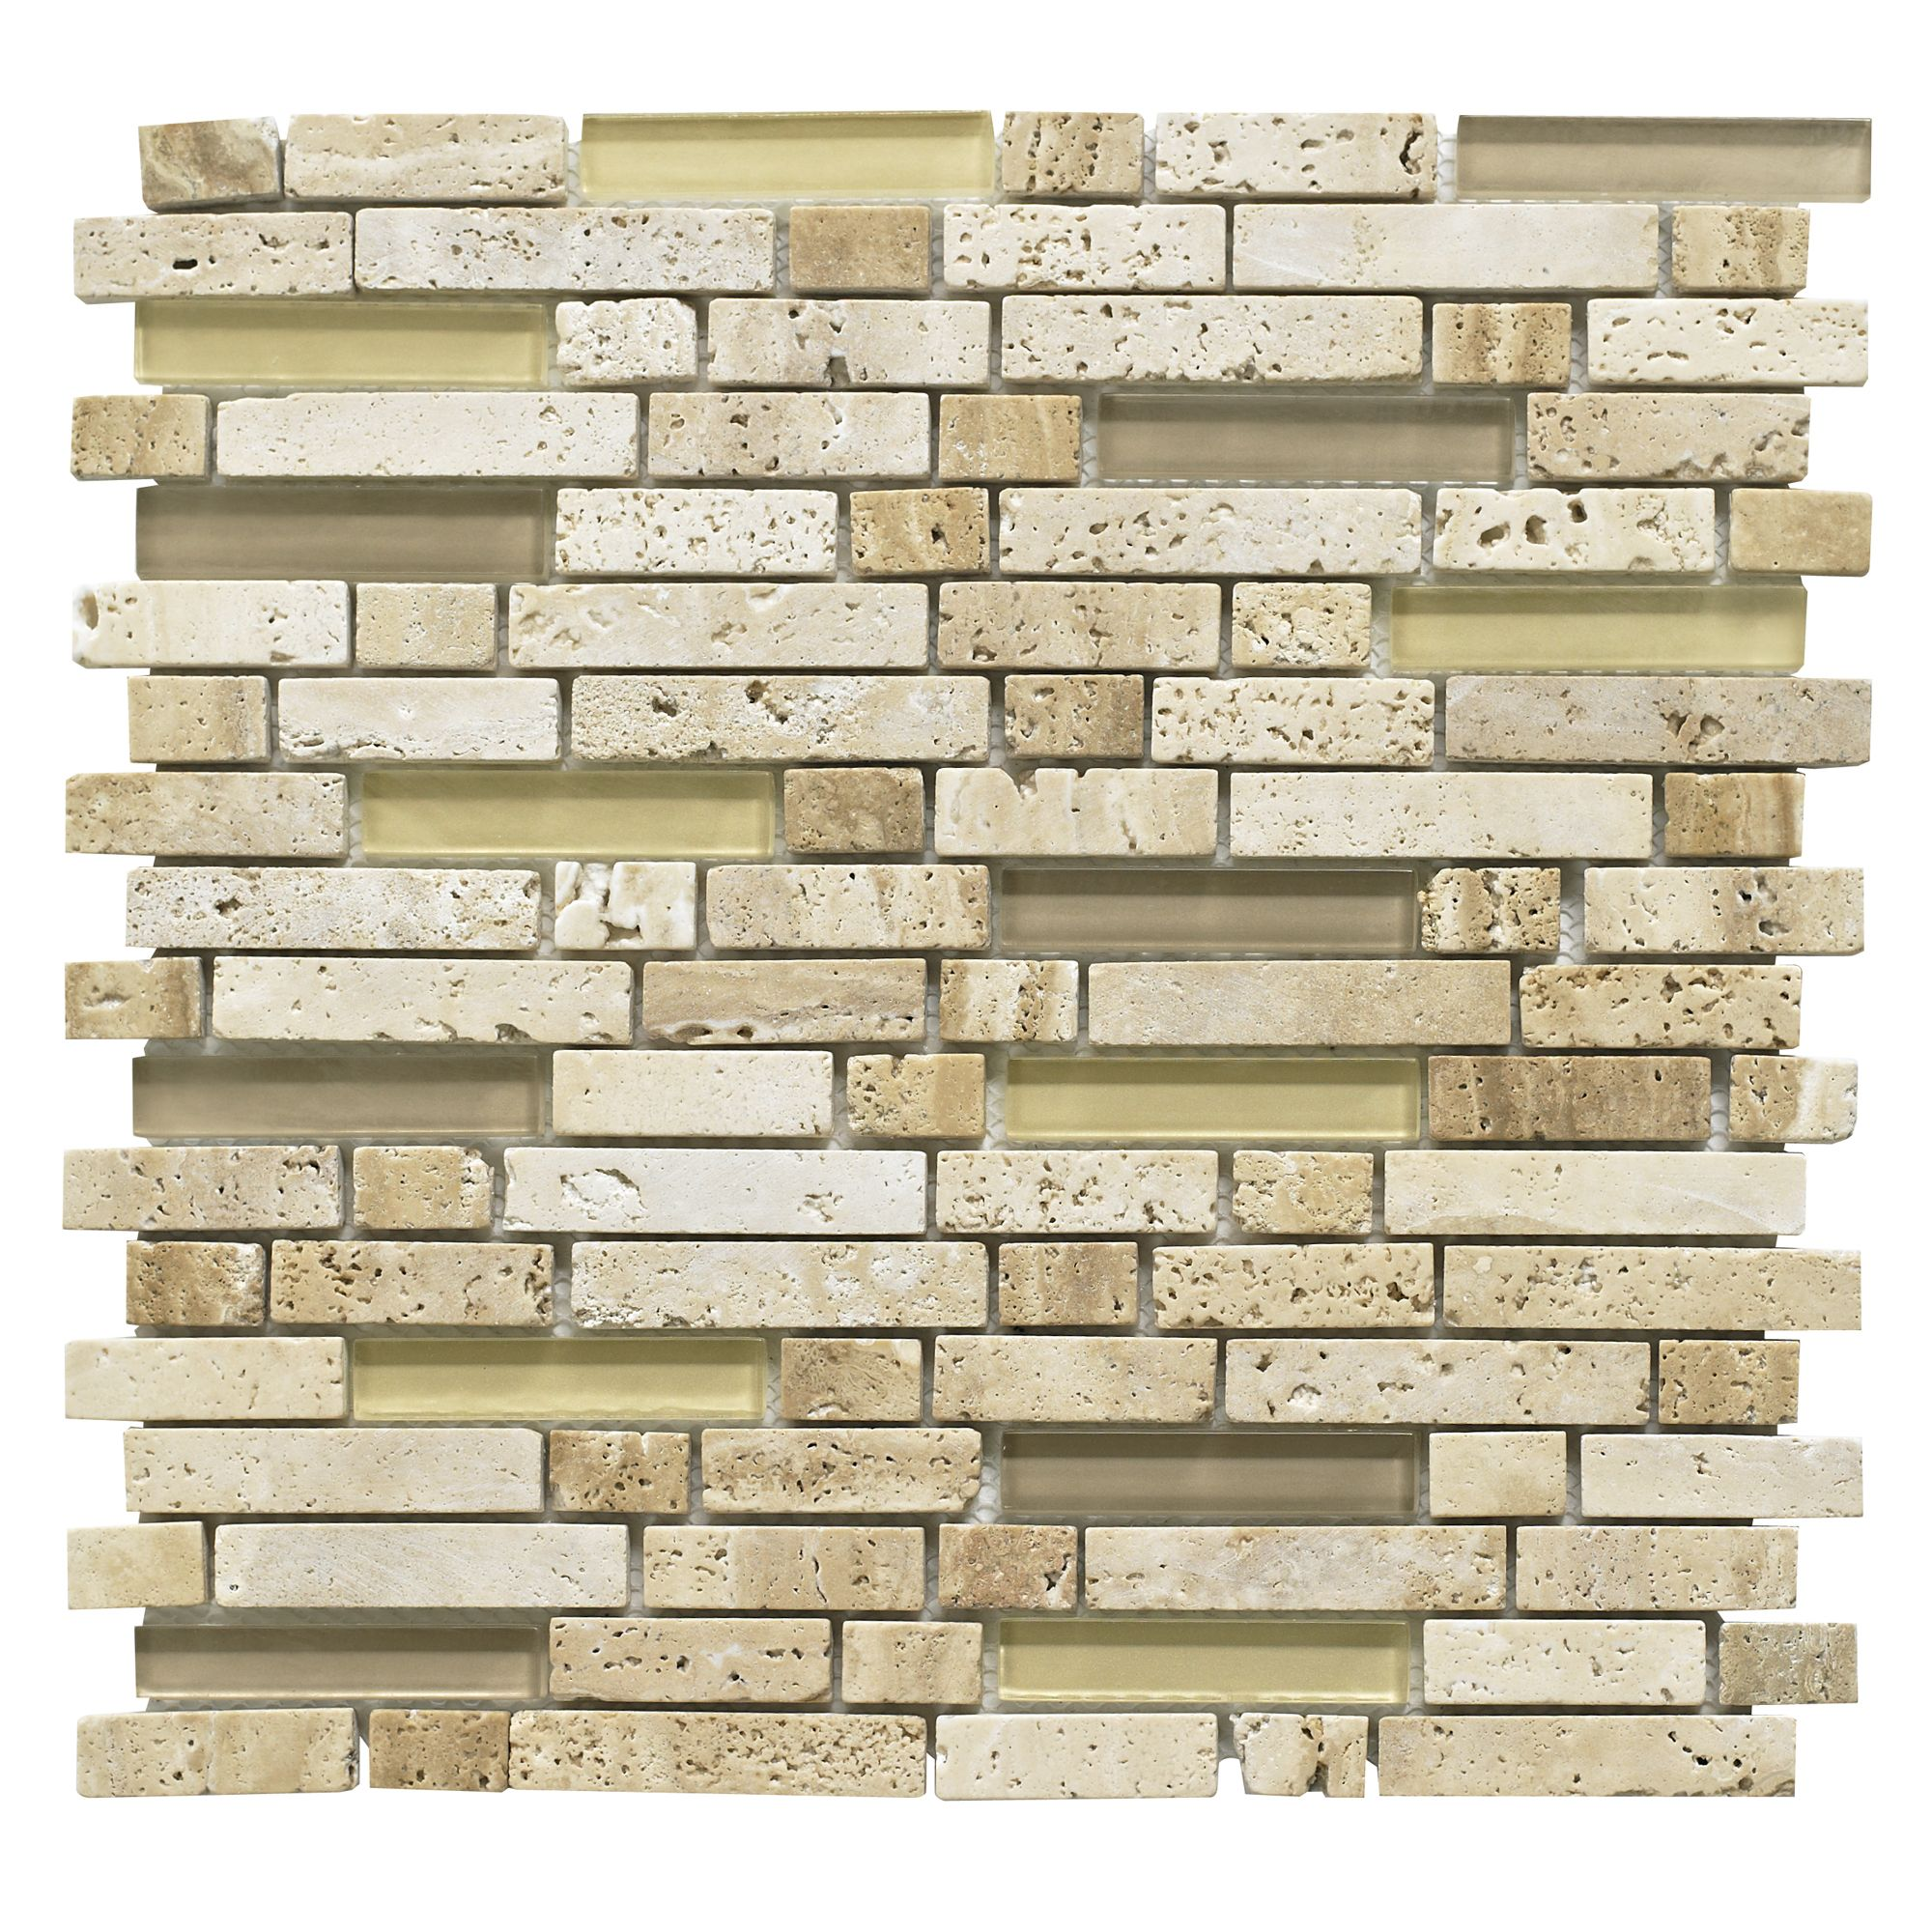 brown mosaic glass stone wall tile l 300mm w 308mm. Black Bedroom Furniture Sets. Home Design Ideas